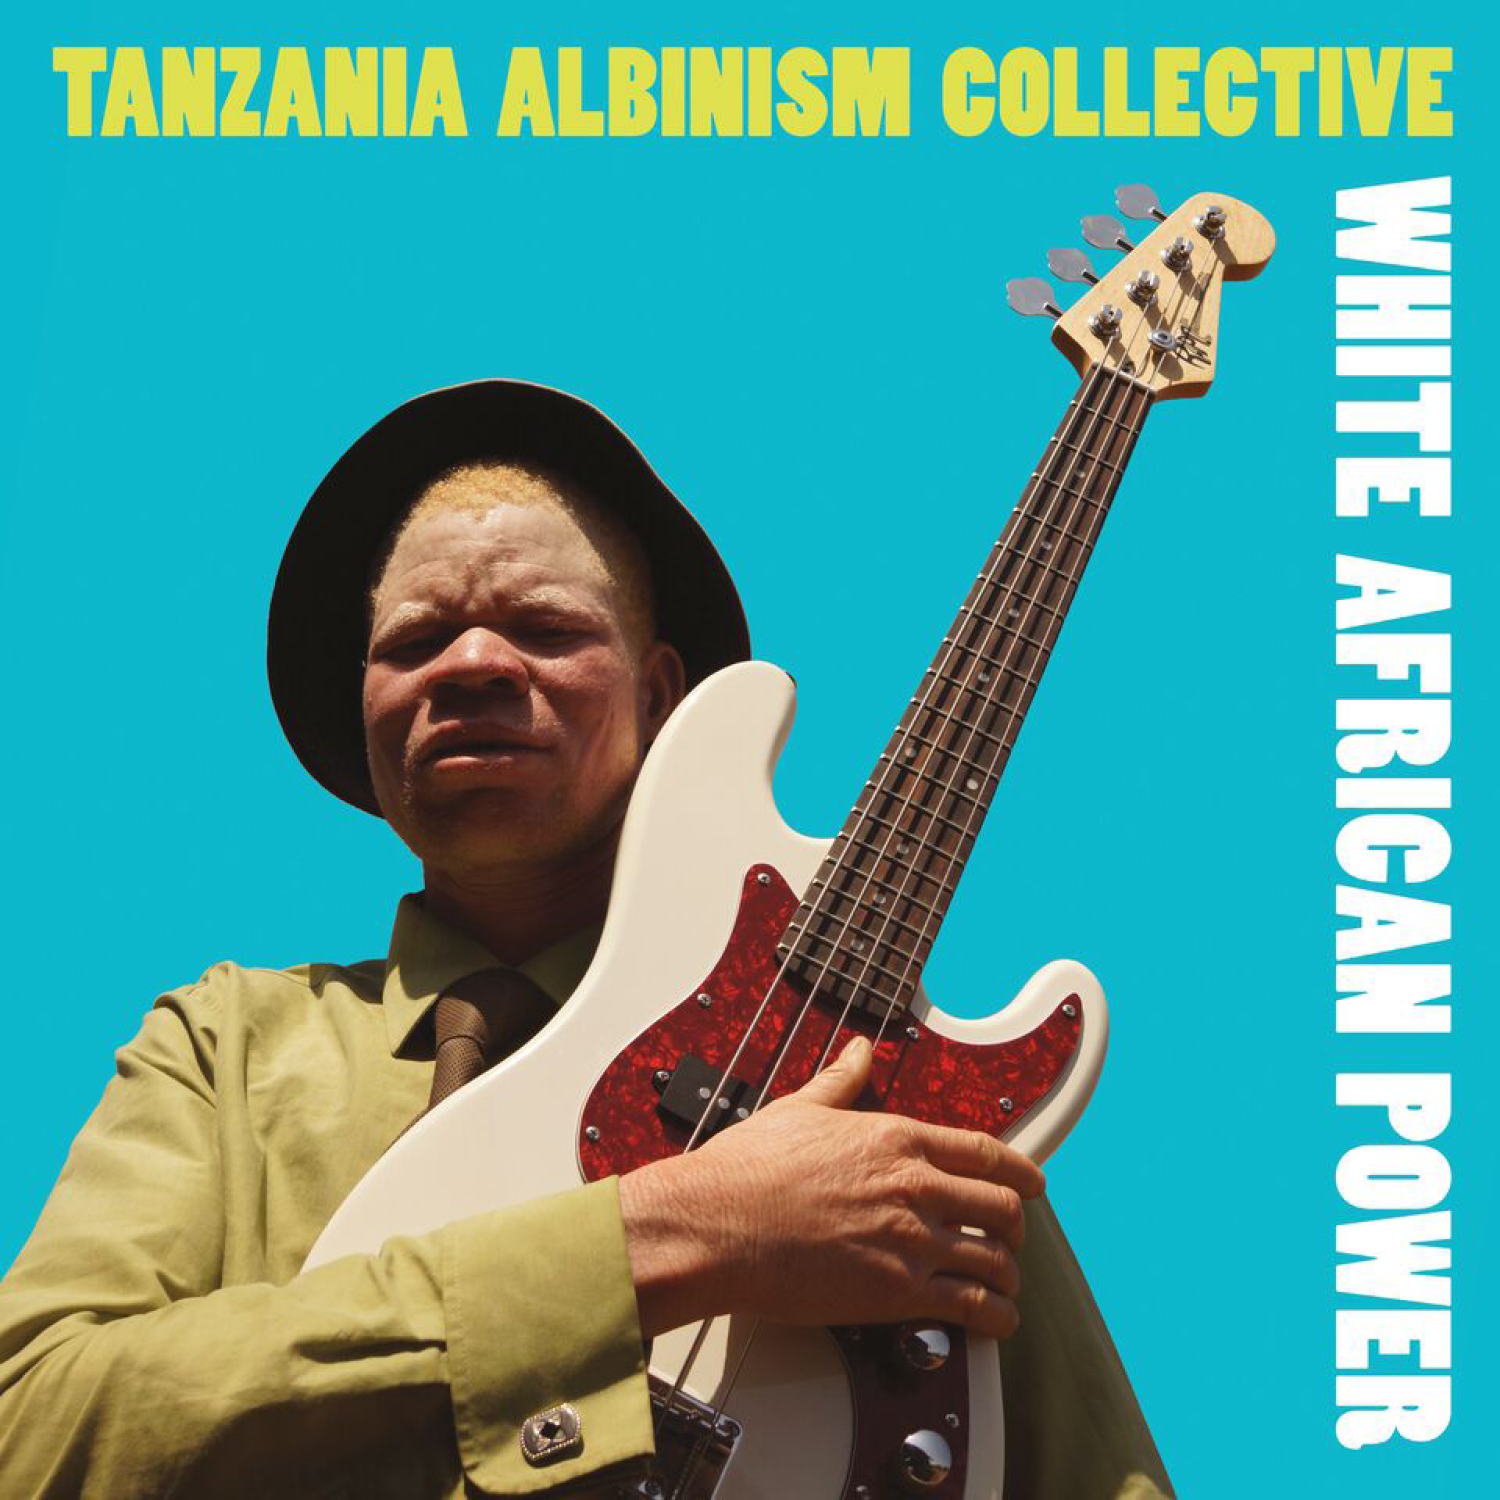 Tanzania Albinism Collective – White African Power